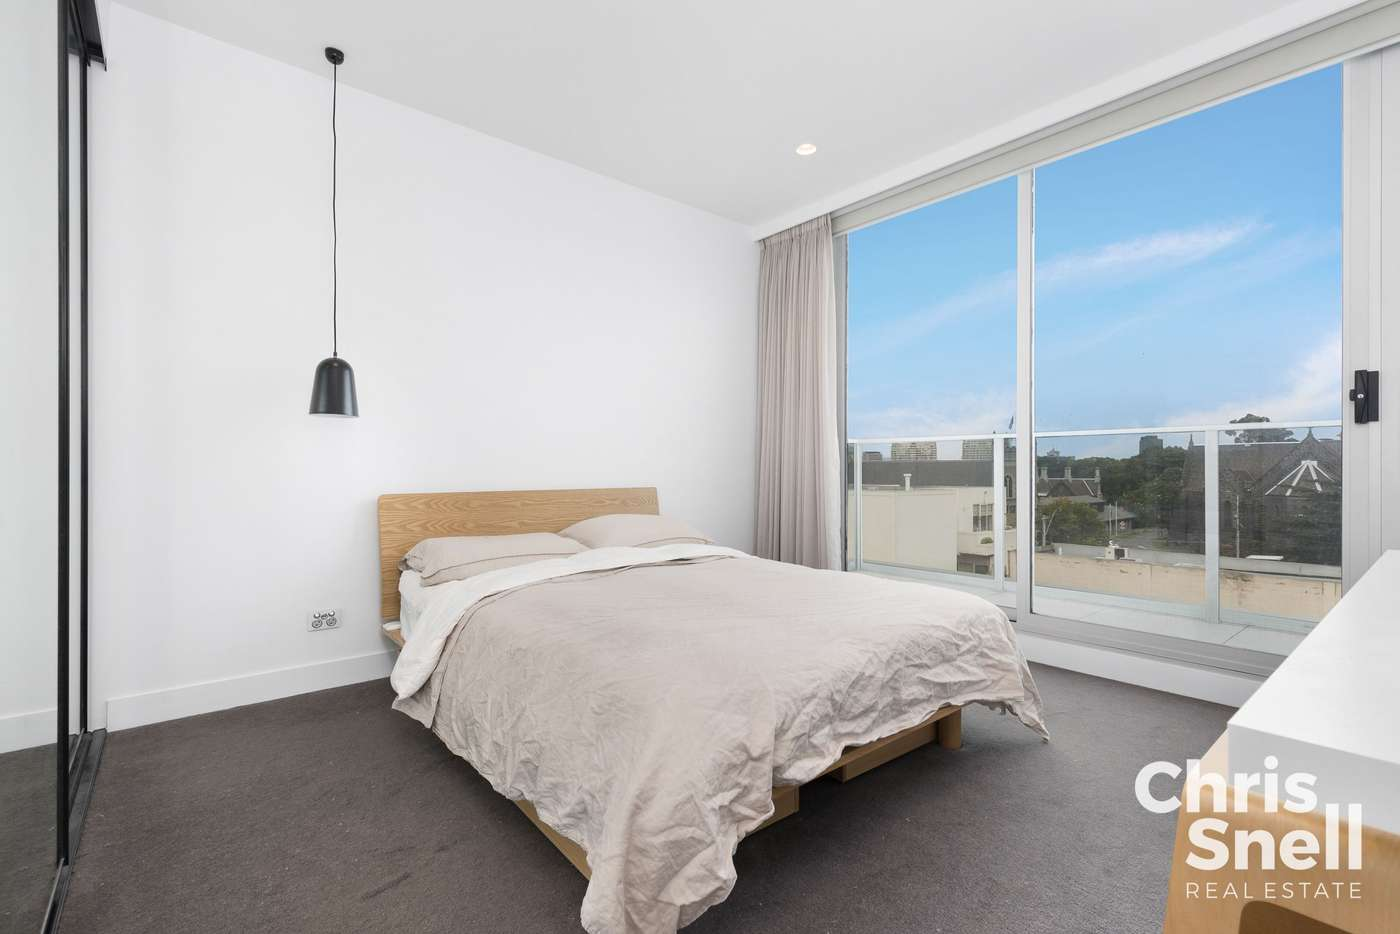 Seventh view of Homely apartment listing, 401/42 Ralston Street, South Yarra VIC 3141